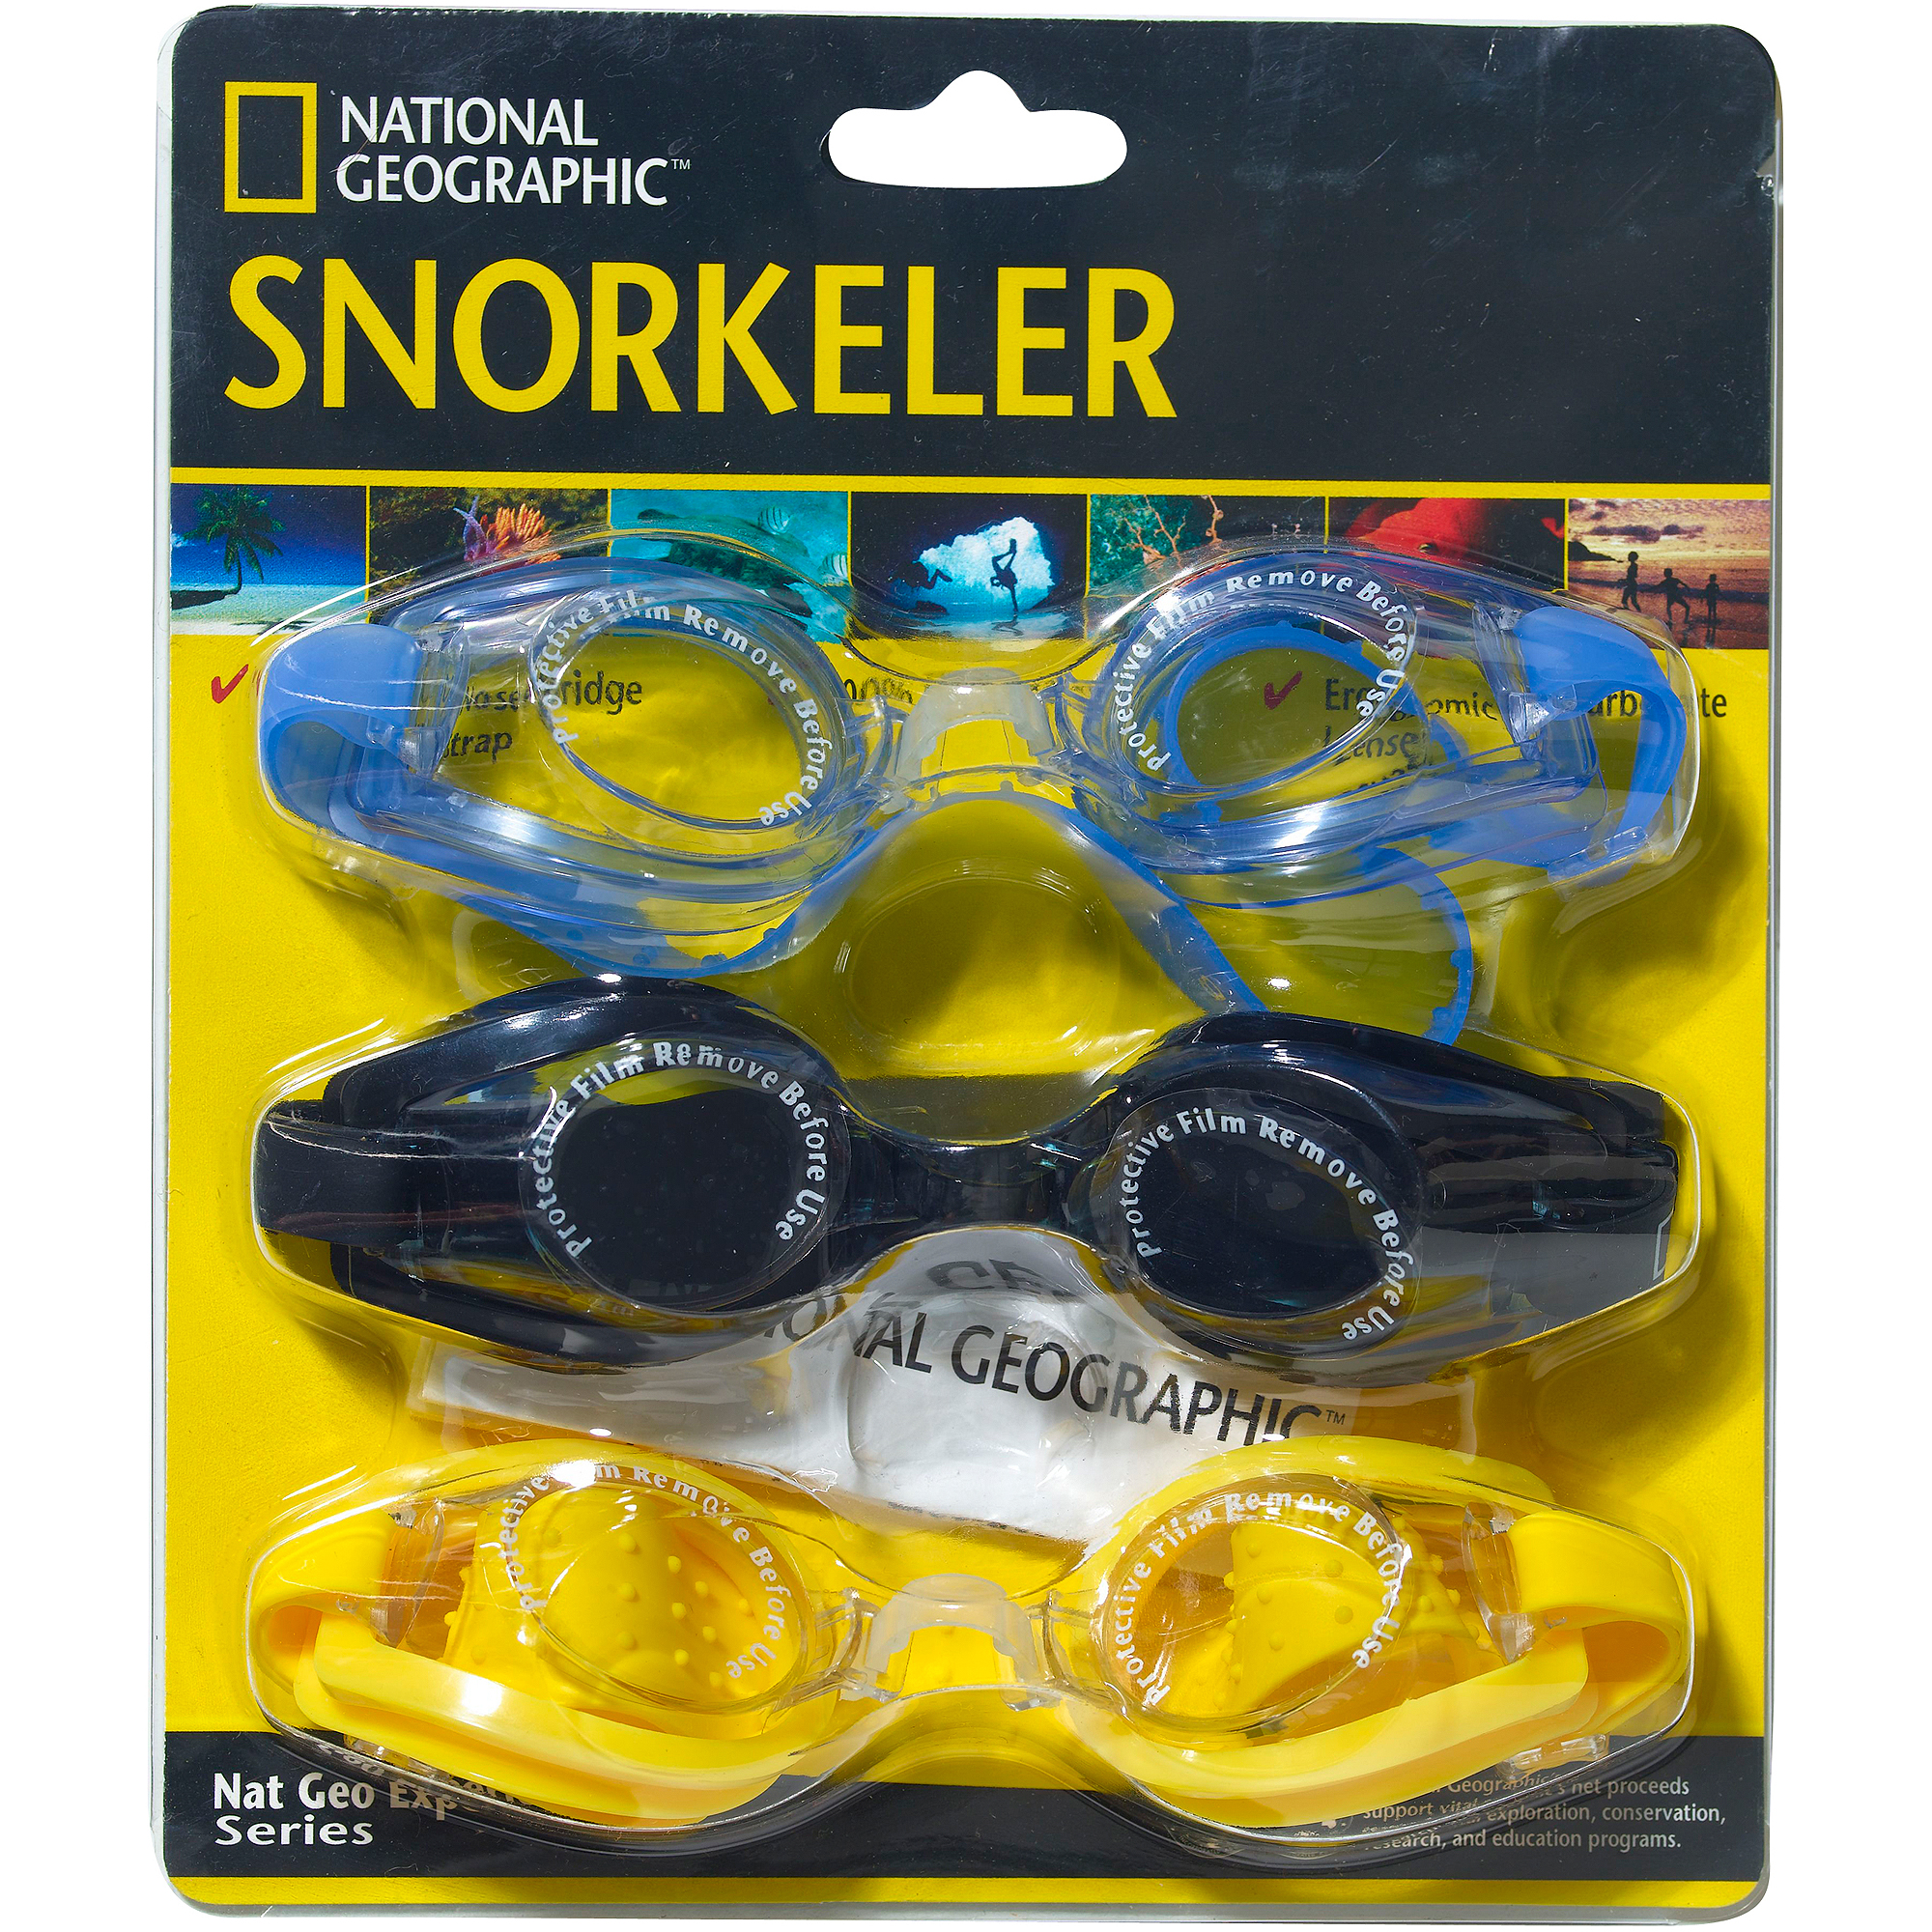 National Geographic Snorkeler Swim Goggle 3-Pack with Adjustable Nose Bridge